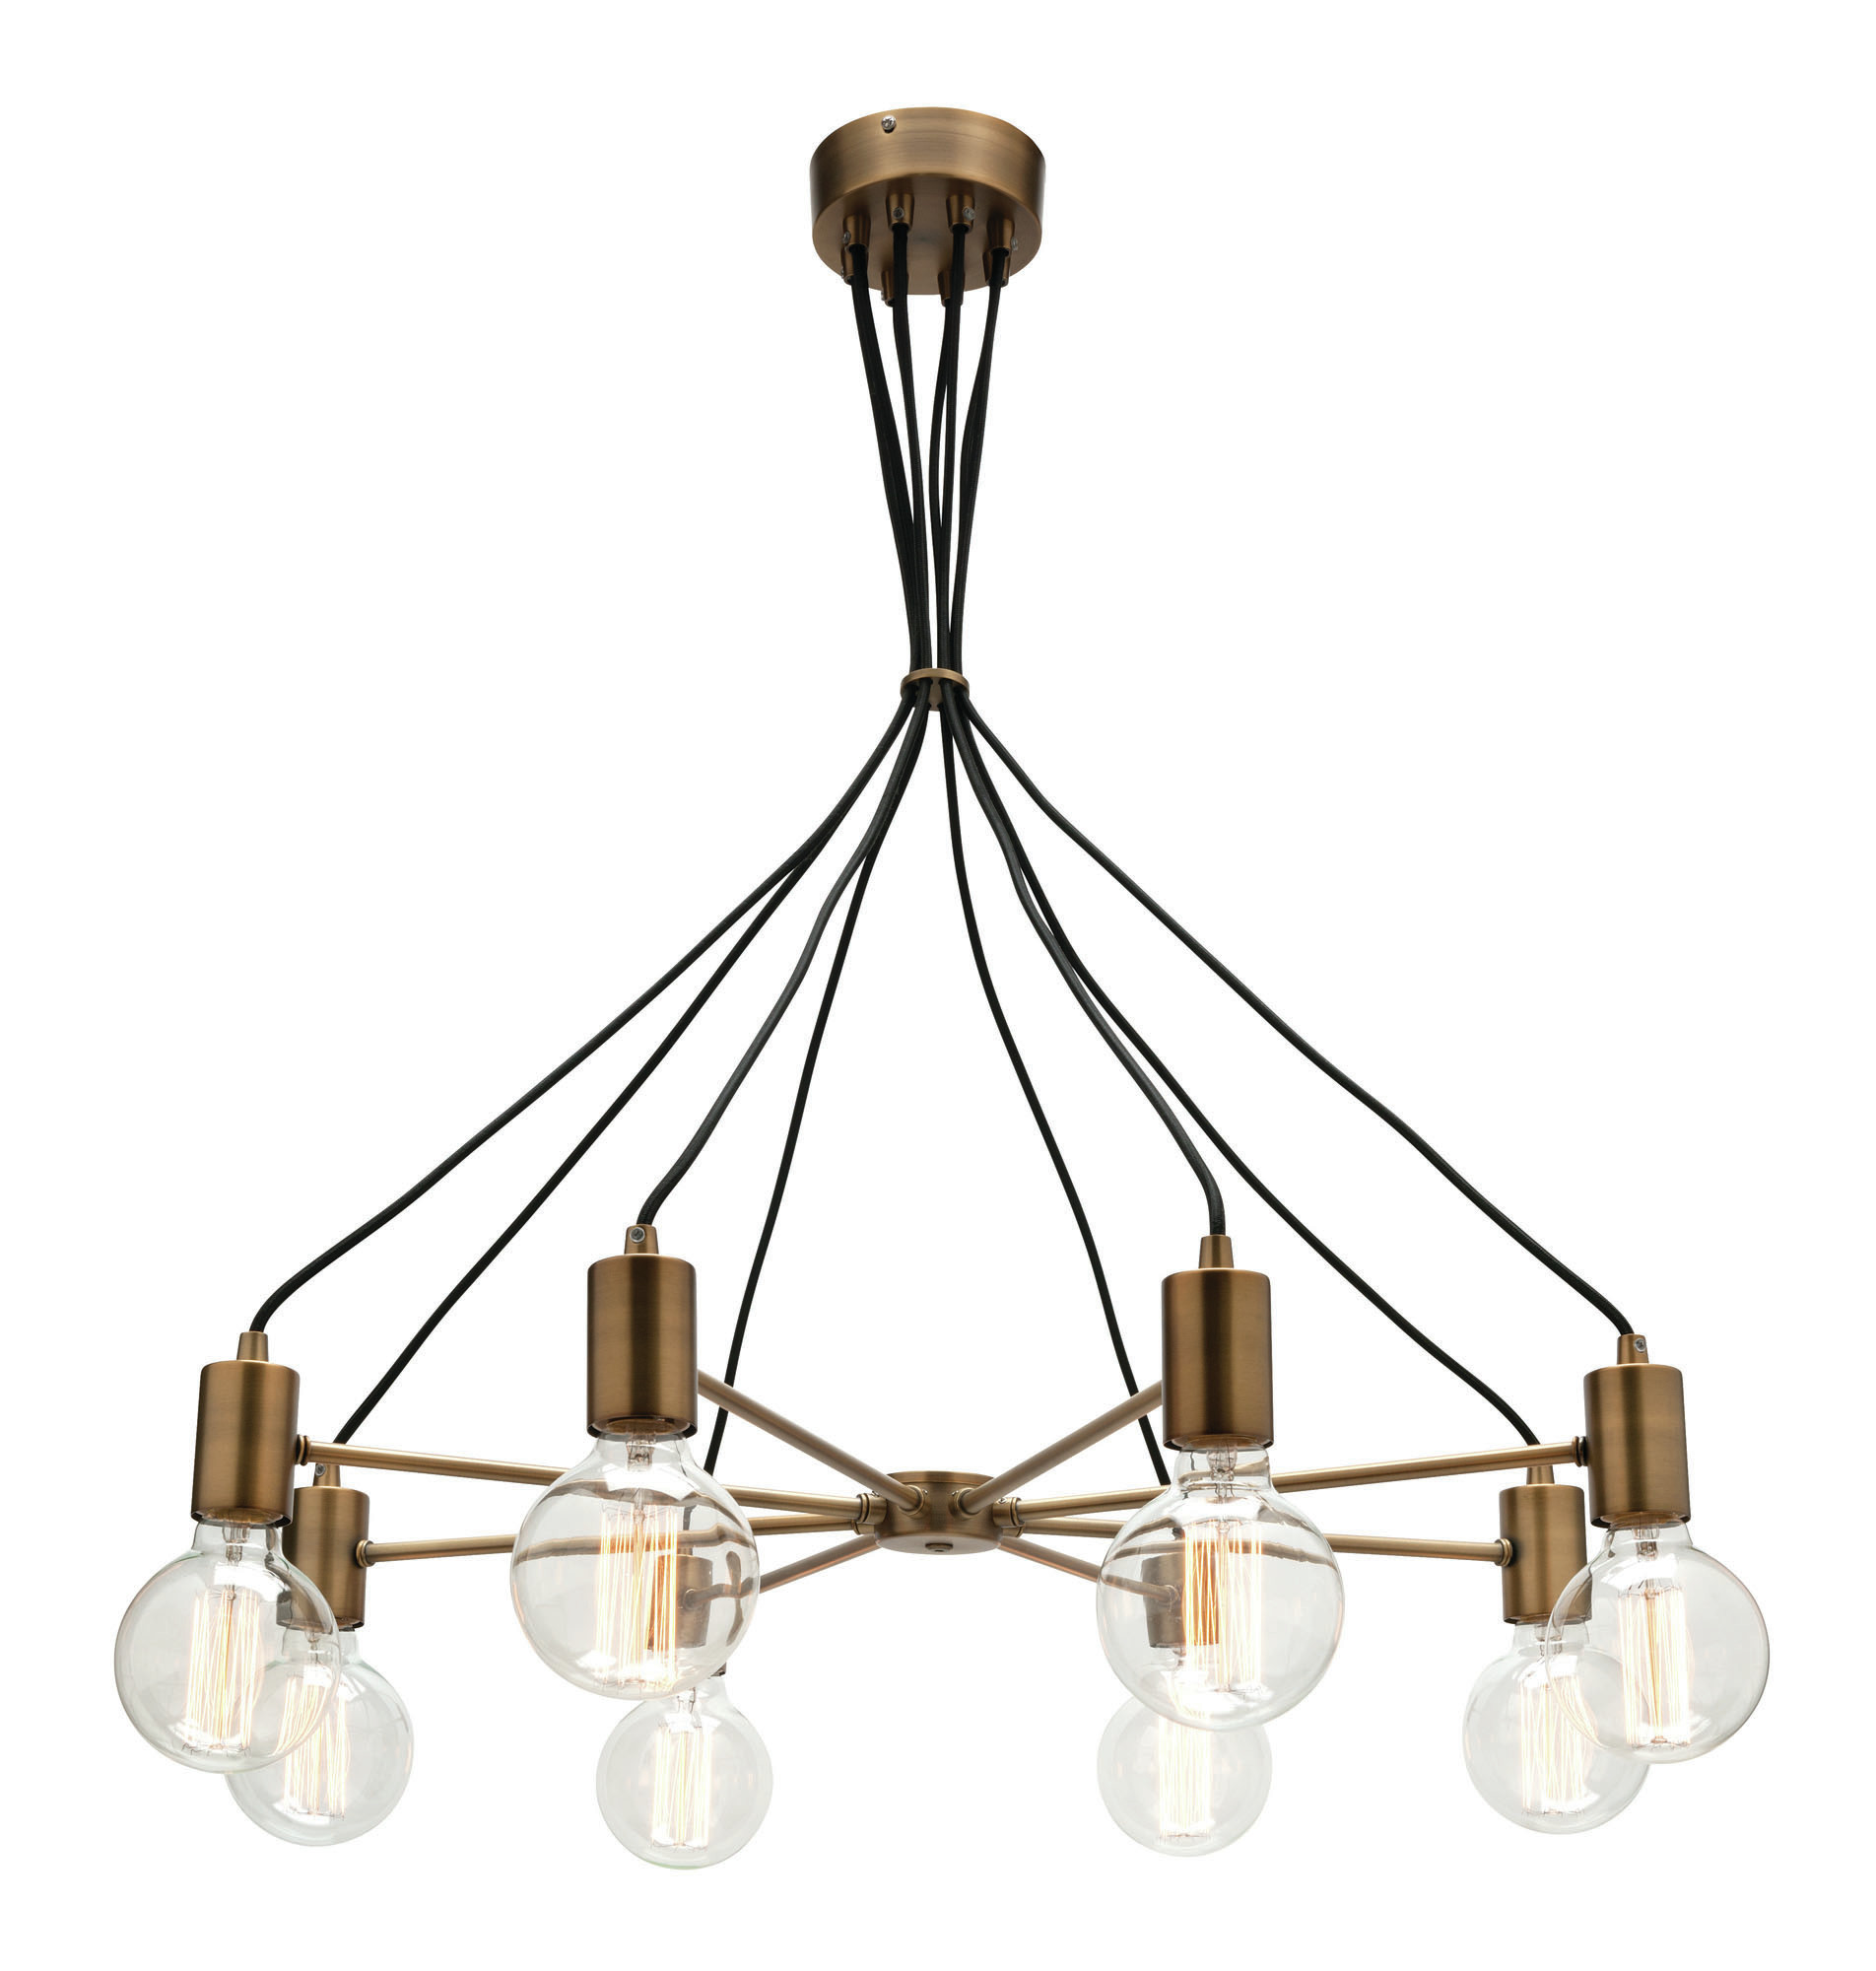 pendant inch home overstock light product garden today lighting safavieh lamp free shipping brass large darby adjustable